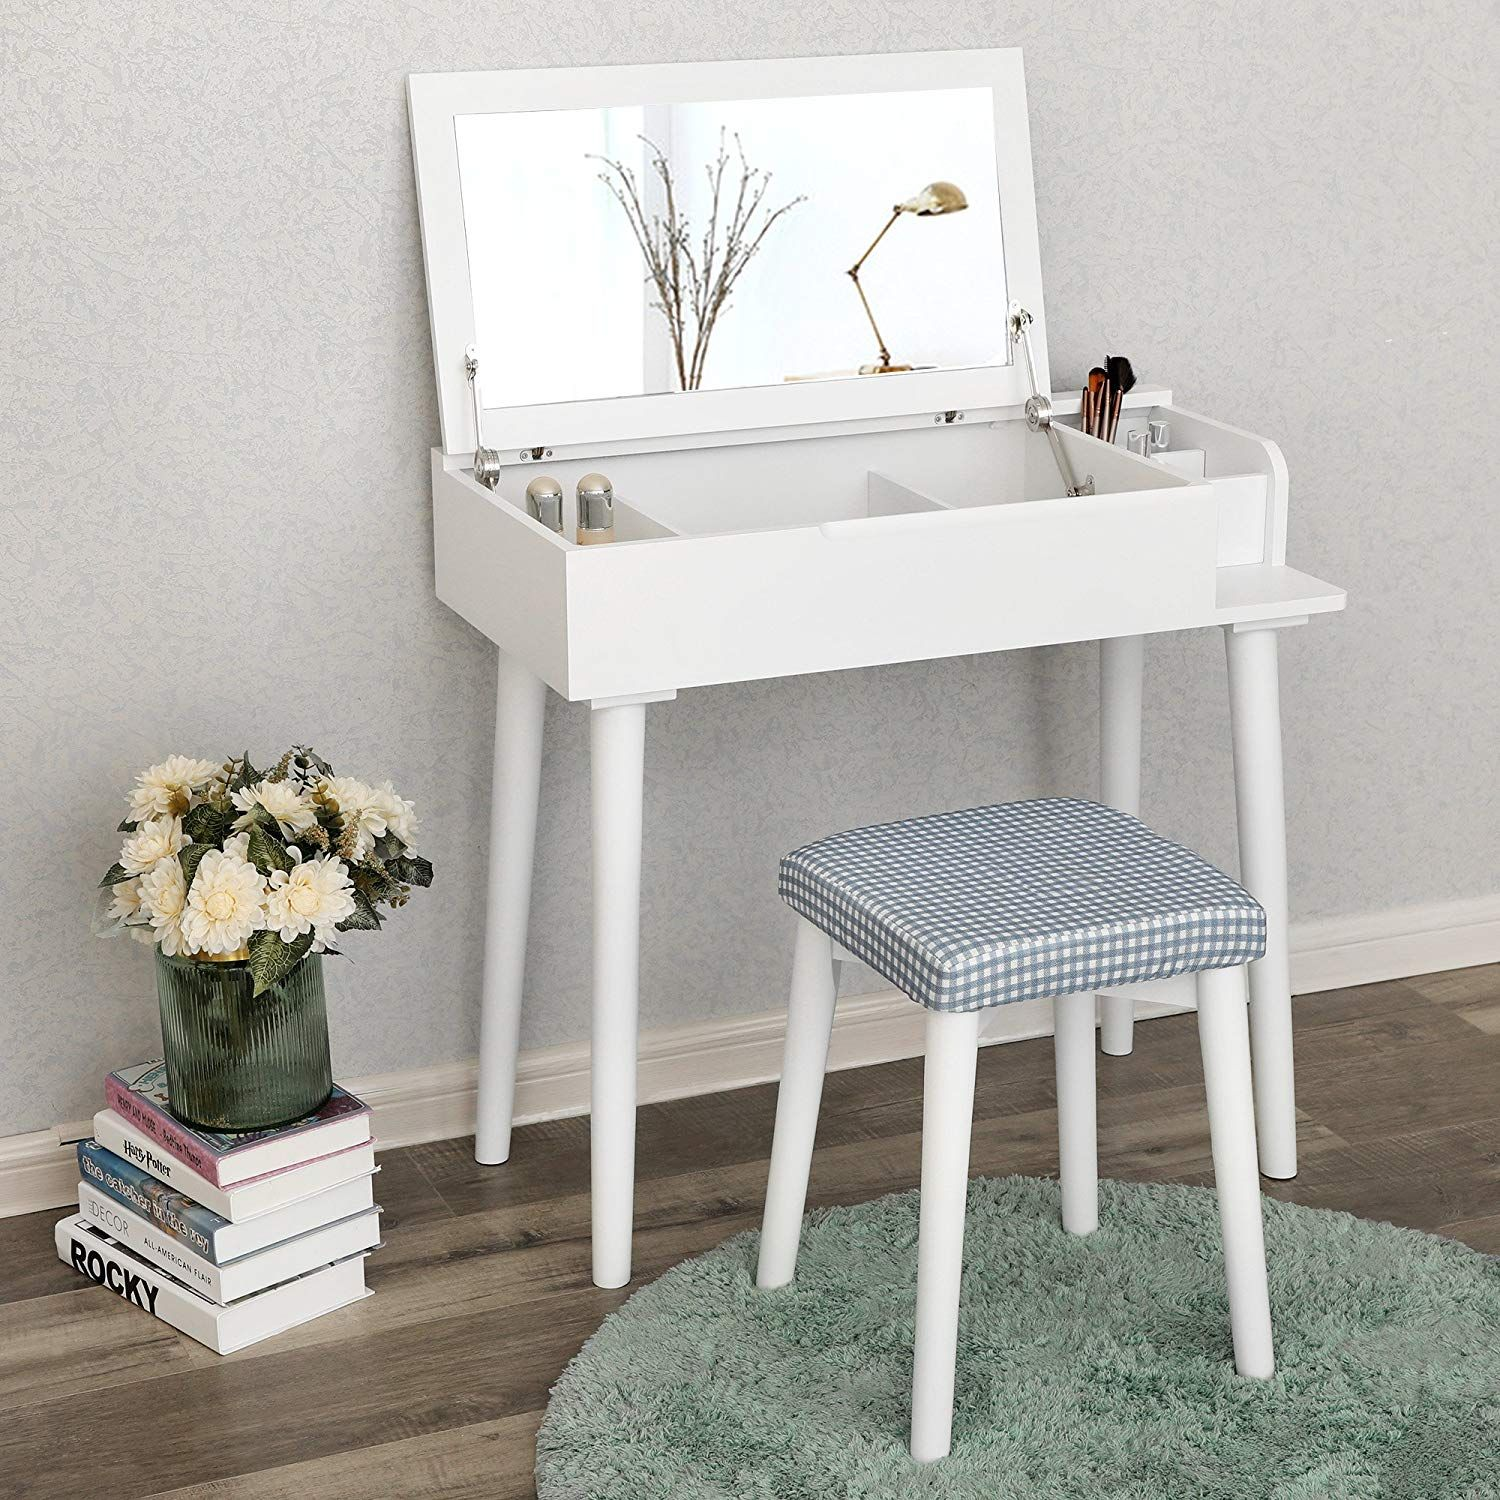 Songmics Vanity Makeup Table With Organizers White Small Vanity Table Dressing Table Design Dressing Table For Small Space